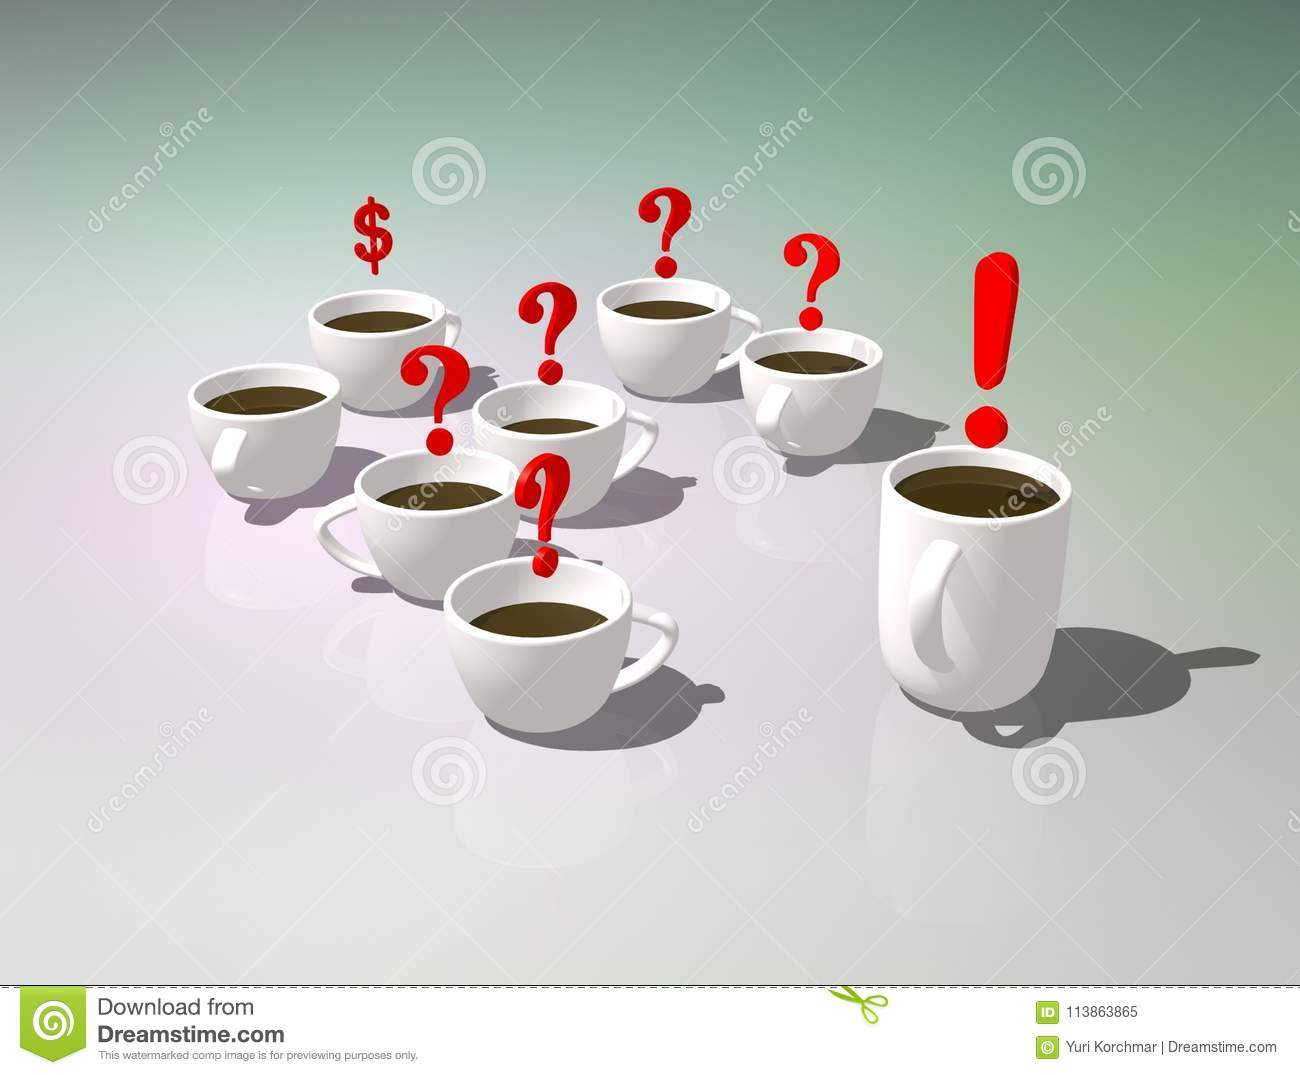 Cups Of Tea  Office Tea Party  Discussion Or Communication